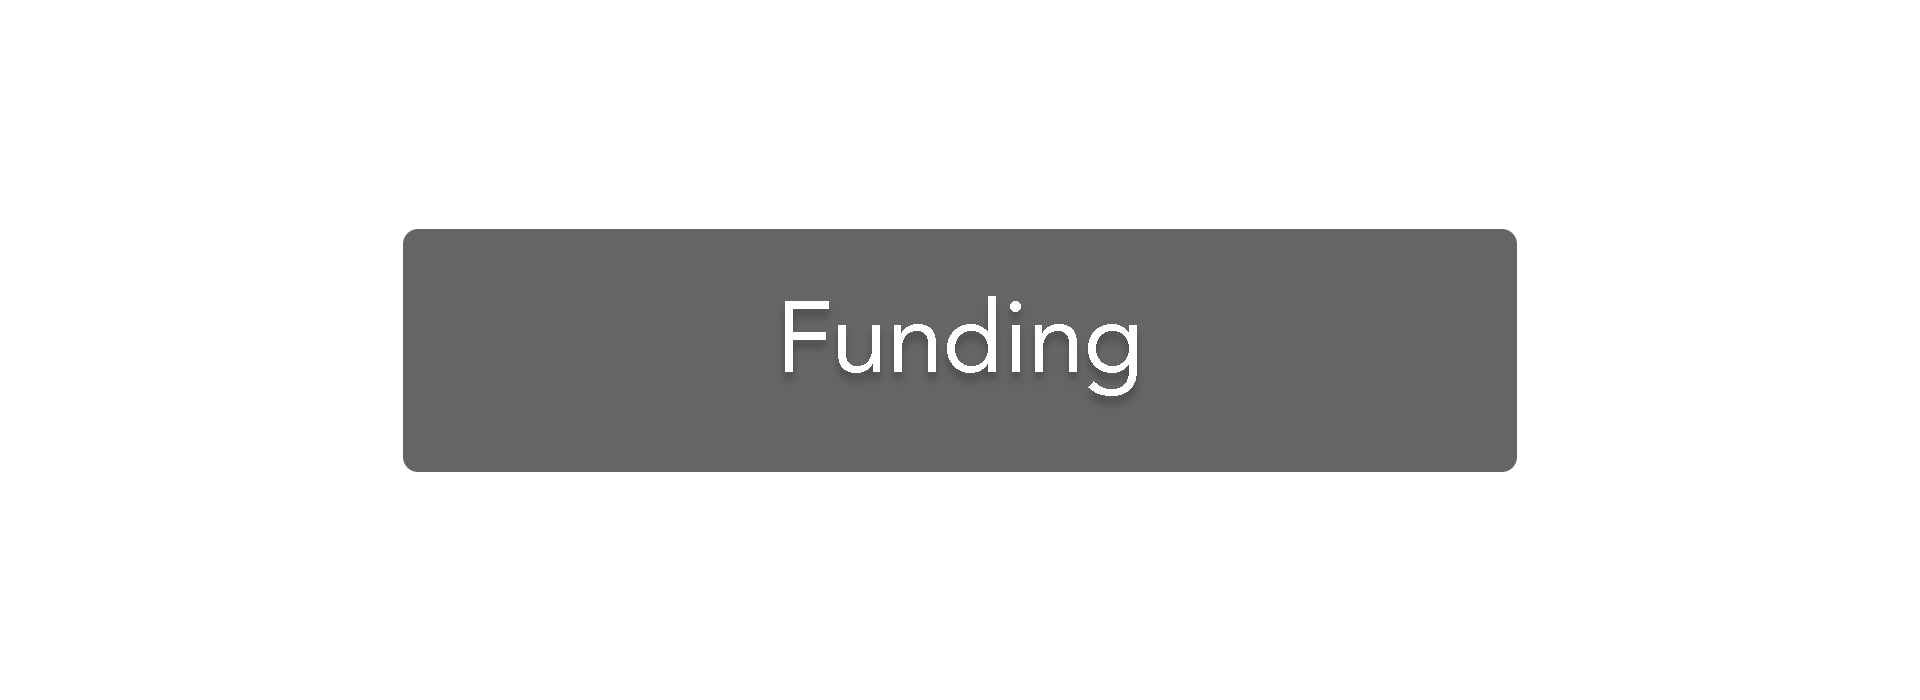 Funding energy projects